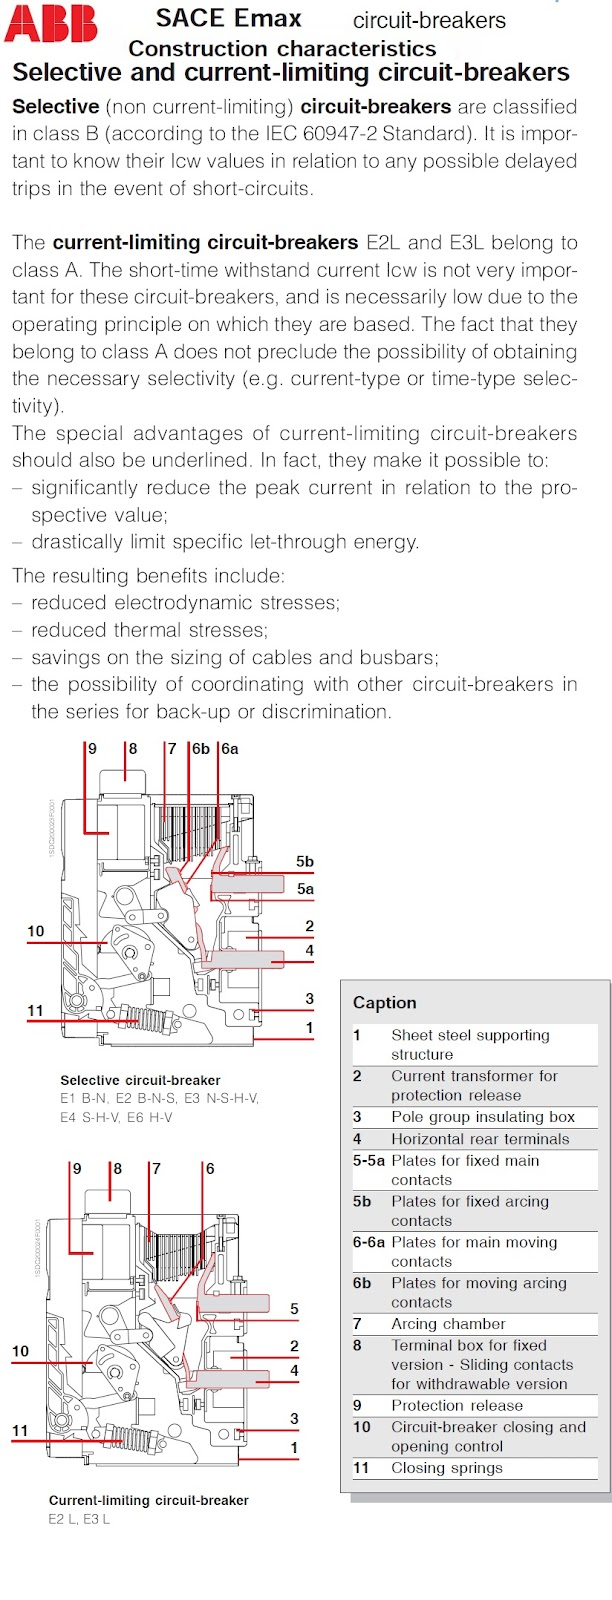 abb sace emax circuit breakers selective and current limiting circuit breakers [ 612 x 1600 Pixel ]